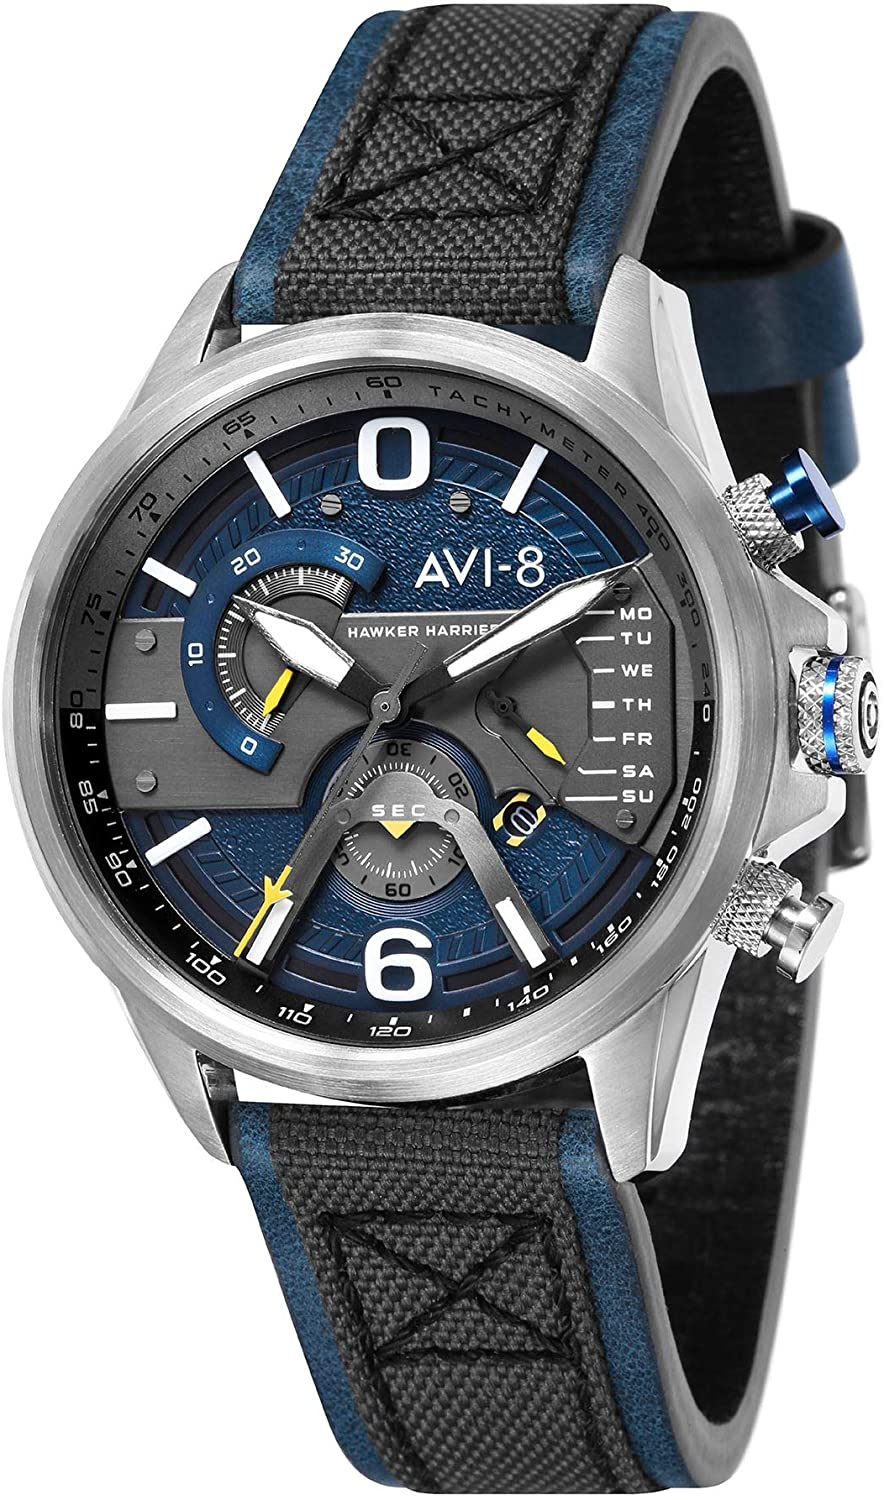 AVI-8 Hawker Harrier II Men's Quartz Watch AV-4056-01